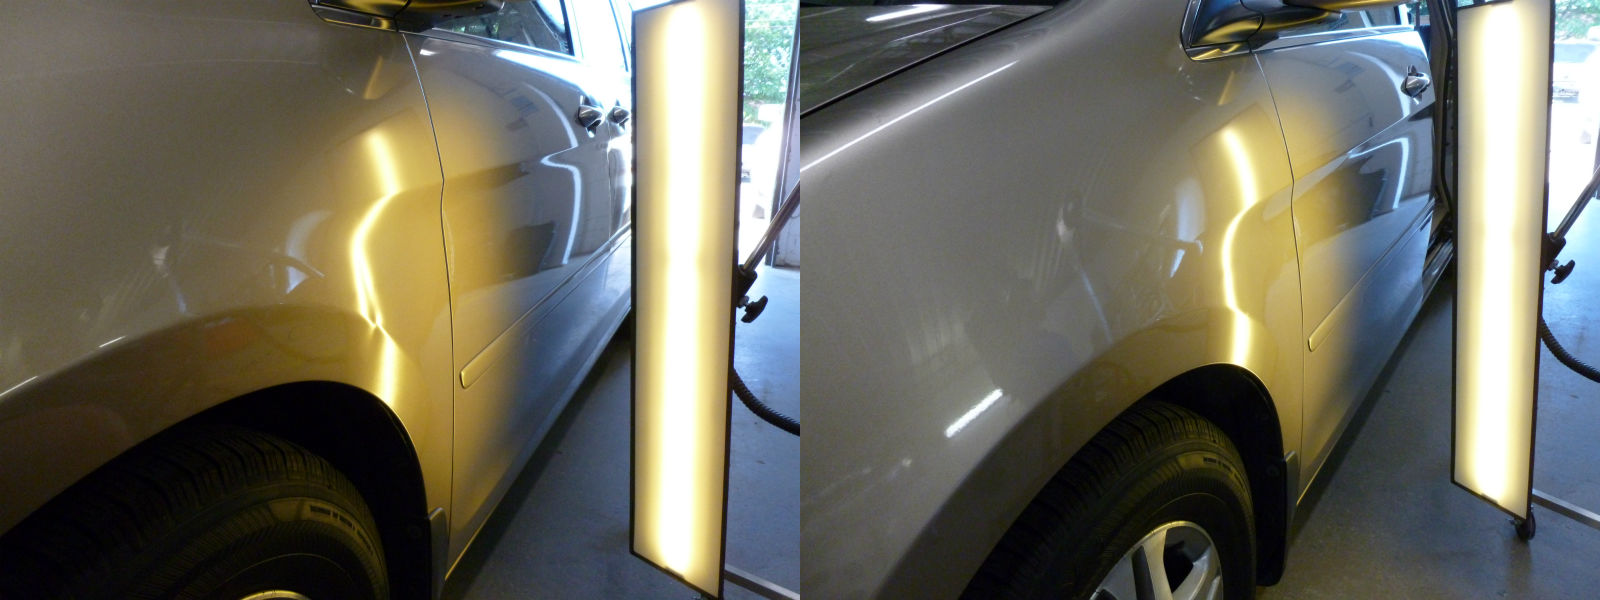 Door Ding on the Left Fender of a Honda Odyssey Before and After Paintless Dent Repair & Door Ding on the Left Fender of a Honda Odyssey Before and After ...